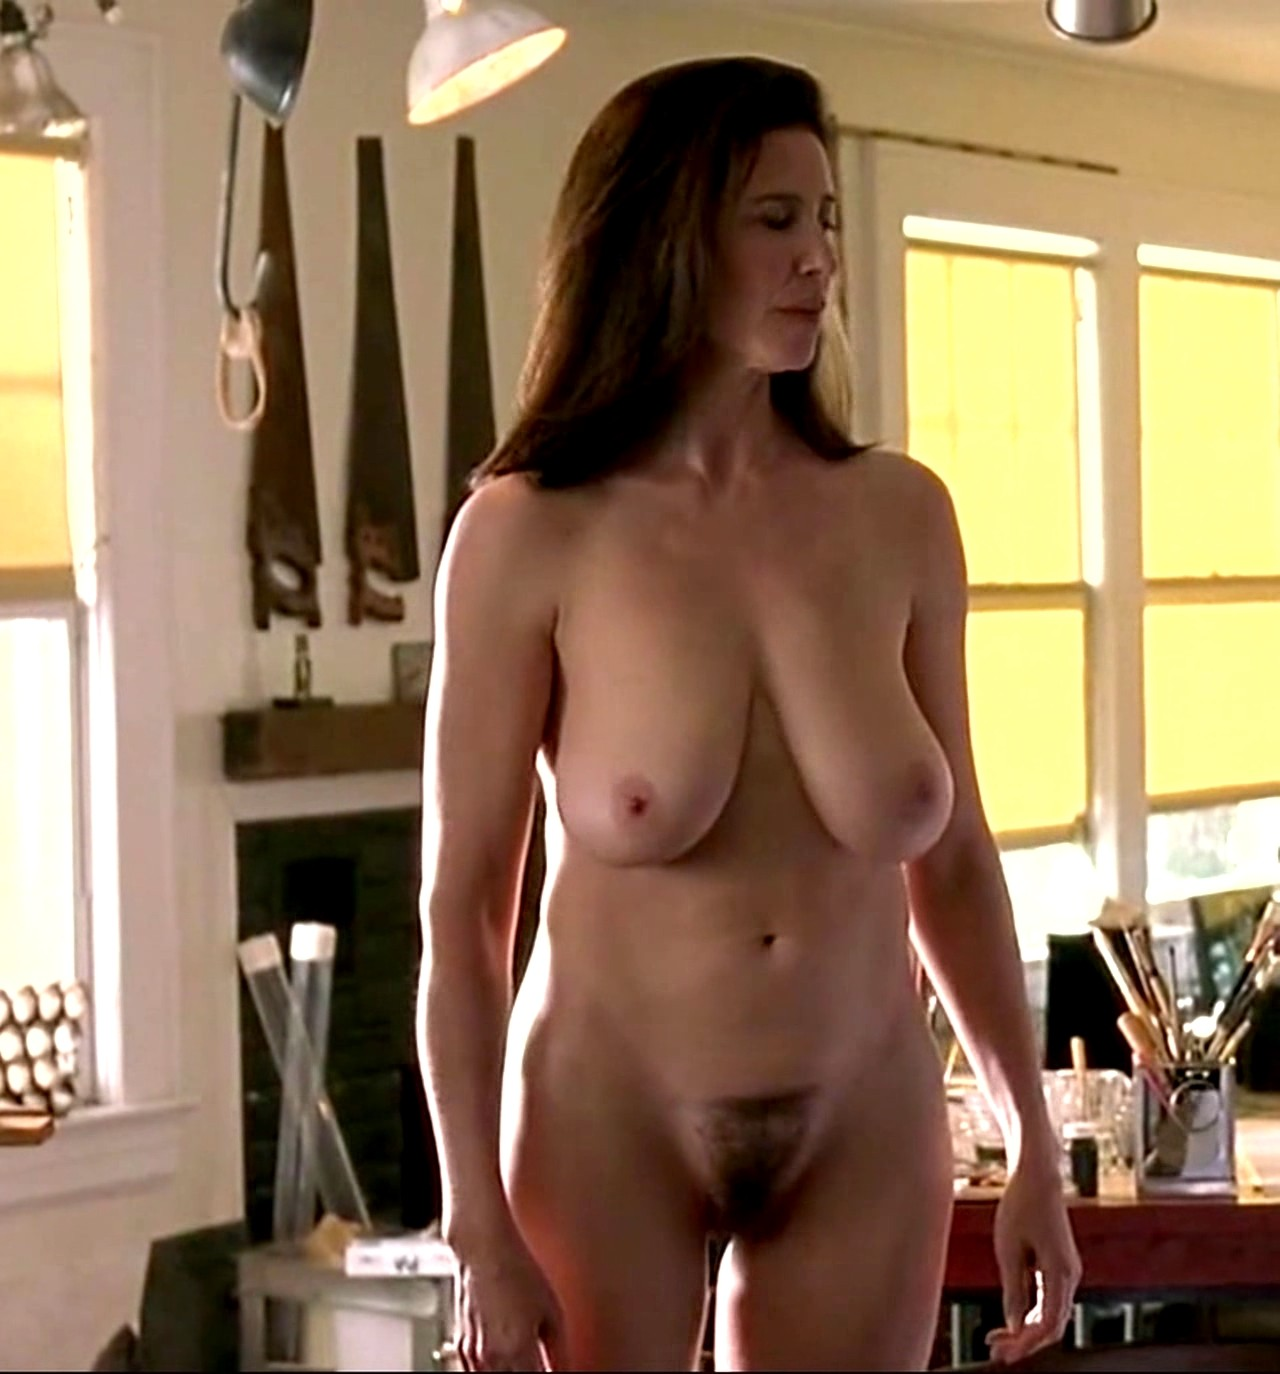 Cote de pablo nudes galleries